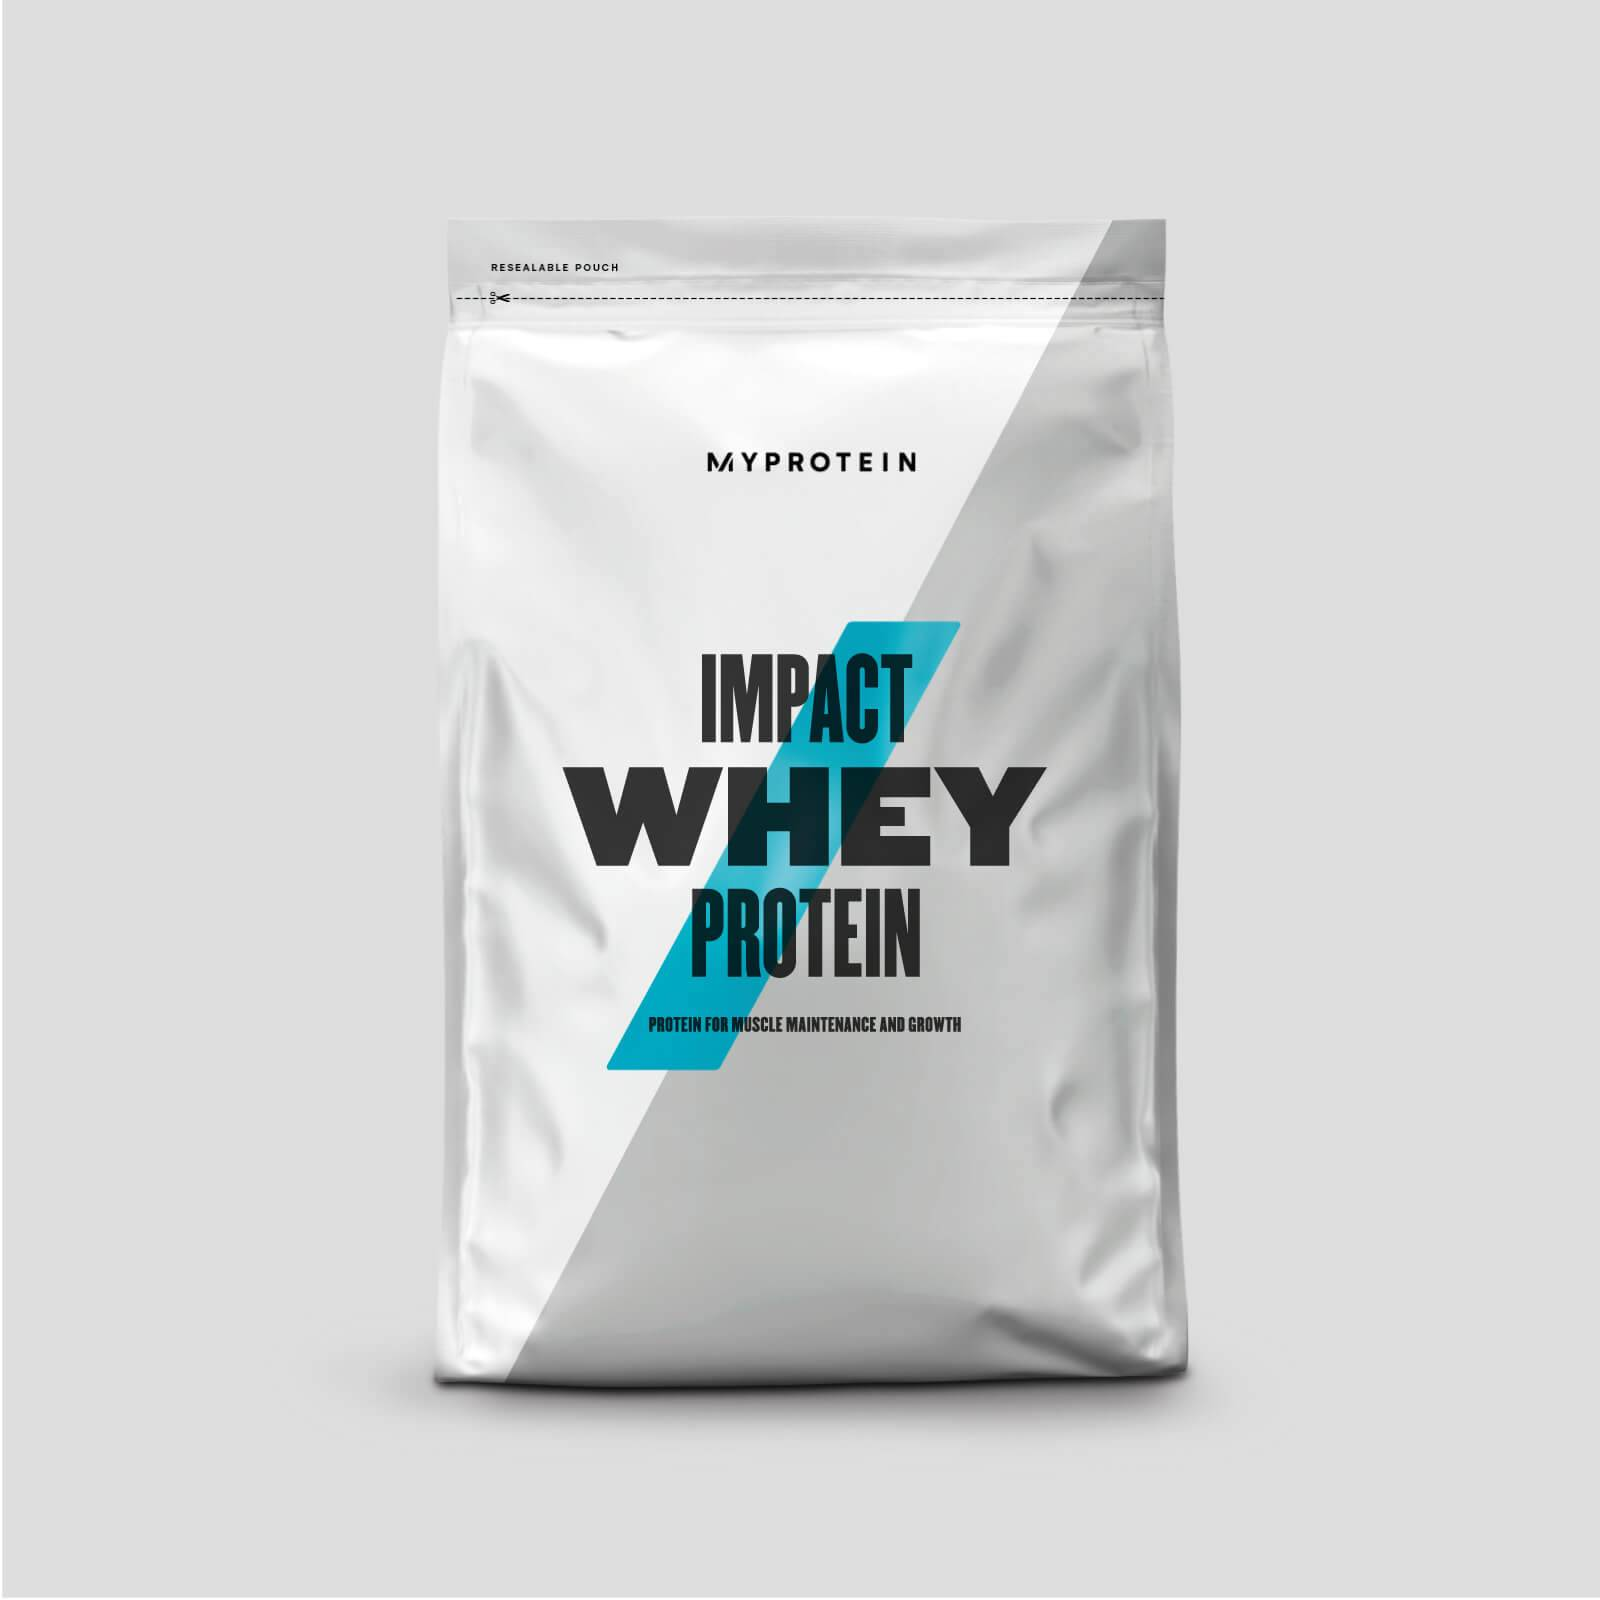 Myprotein Impact Whey Protein - 250g - Chocolate Brownie - New and Improved